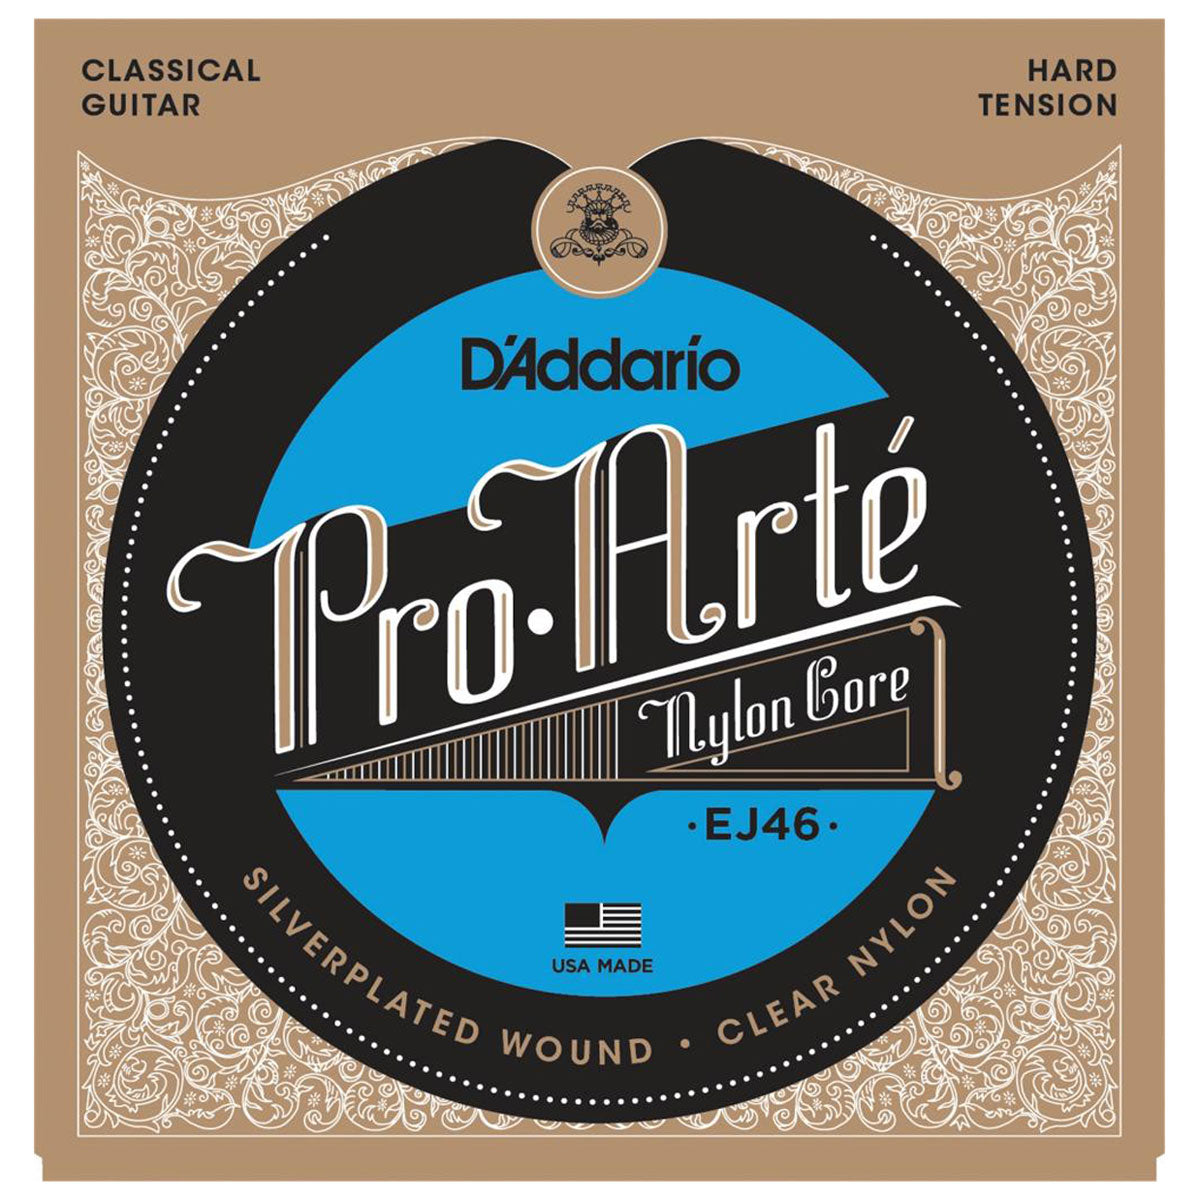 D'Addario - EJ46 Pro Arte - Hard Tension